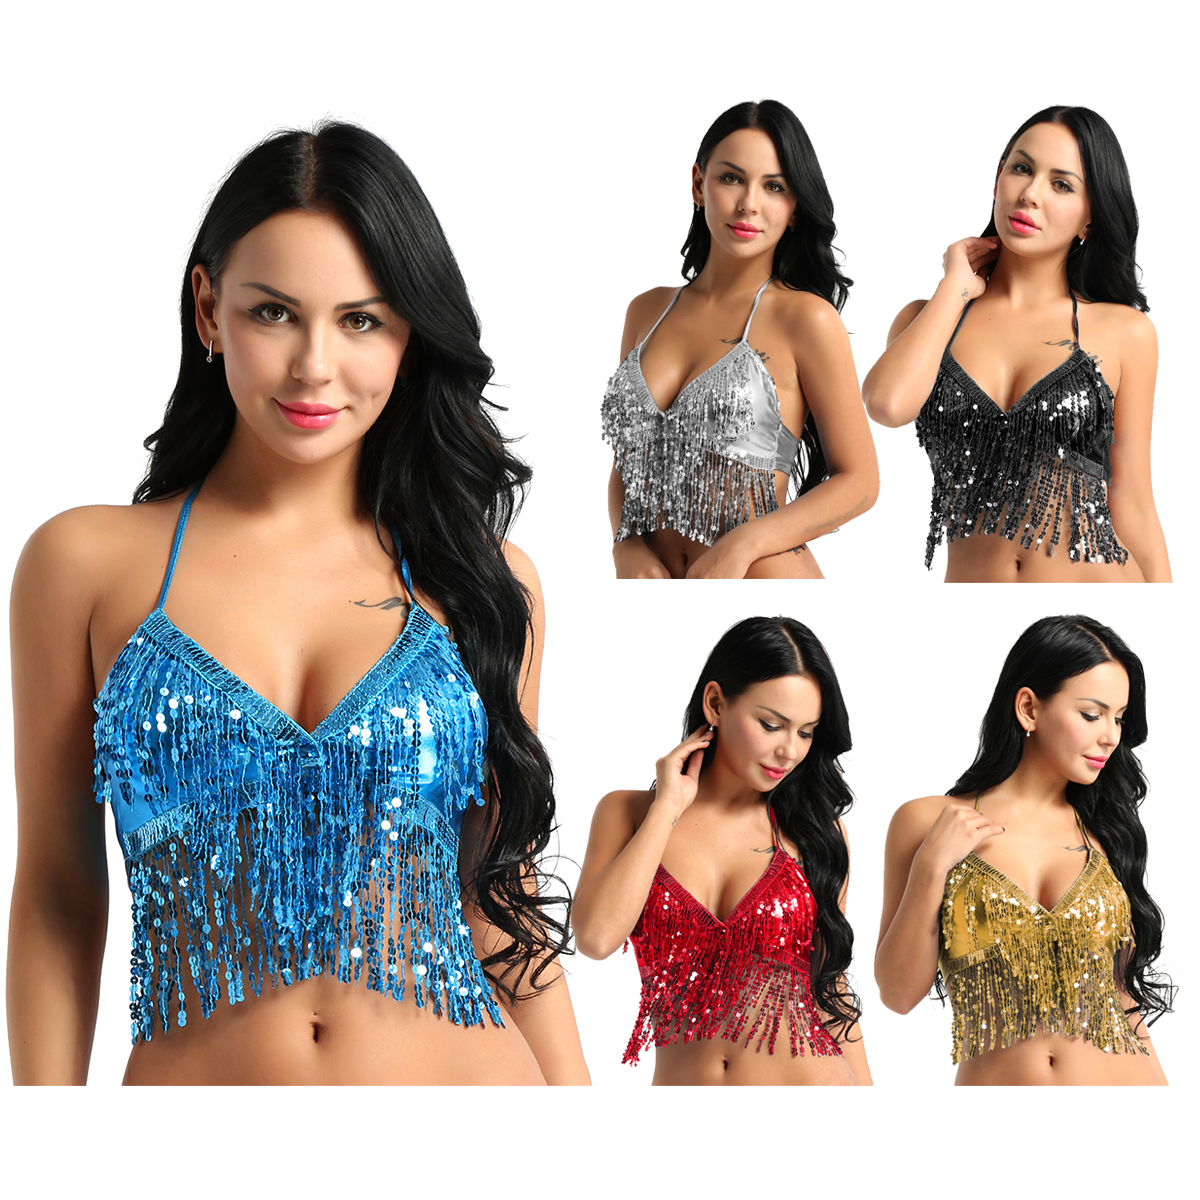 ChicTry Women Shiny Sequins Tassel Halter Dance Bra Top Latin Belly Dance Costume Club Party Festival Rave Dance Sexy Crop Tops